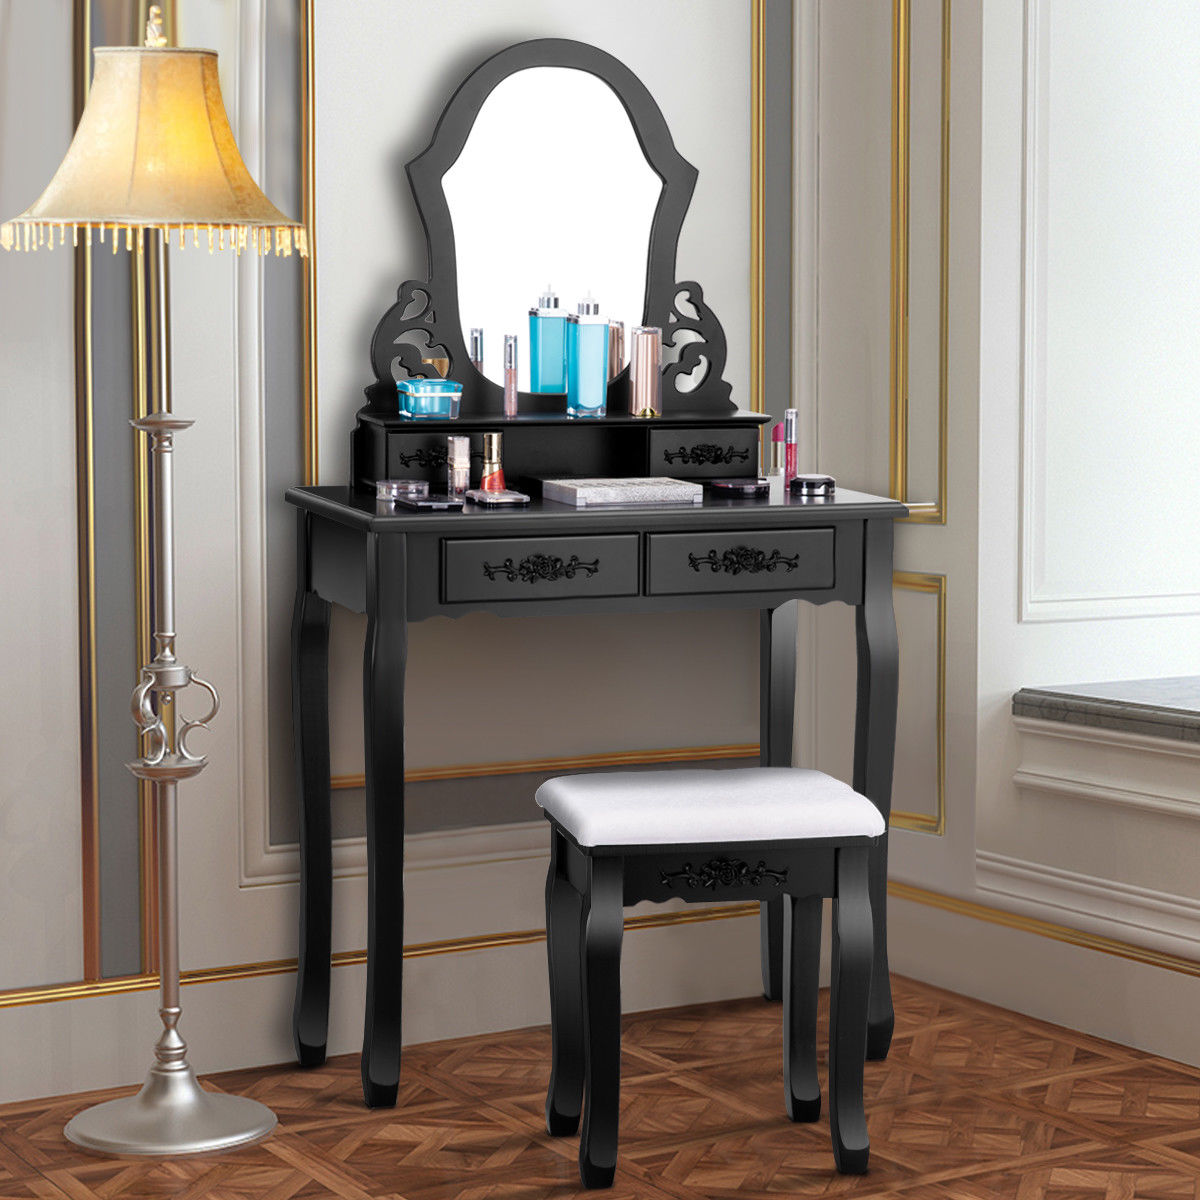 Wooden Make Up Table Costway Vanity Makeup Dressing Set Table Jewelry Wooden Stool Mirror 4 Drawer Black